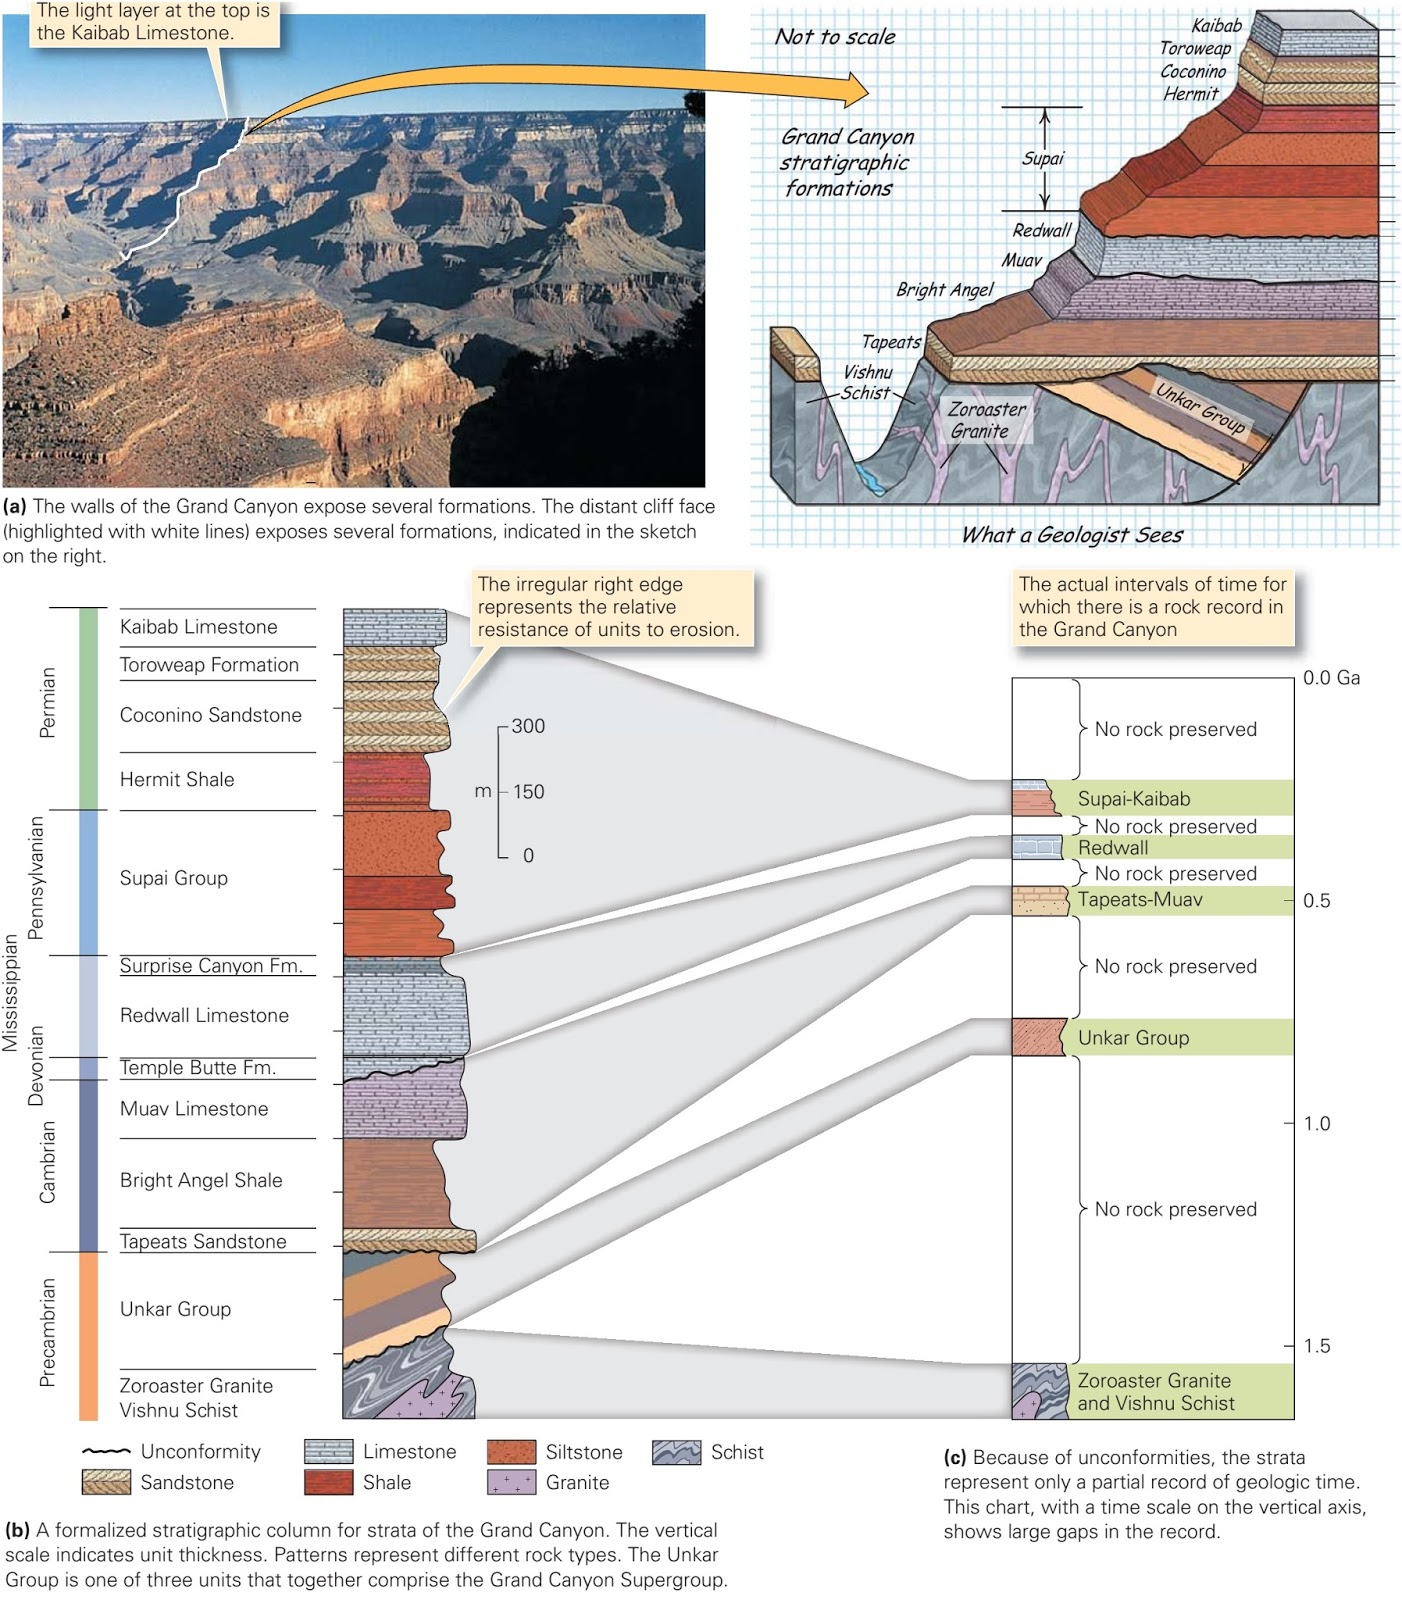 small resolution of the stratigraphic formations and stratigraphic column for the grand canyon in arizona